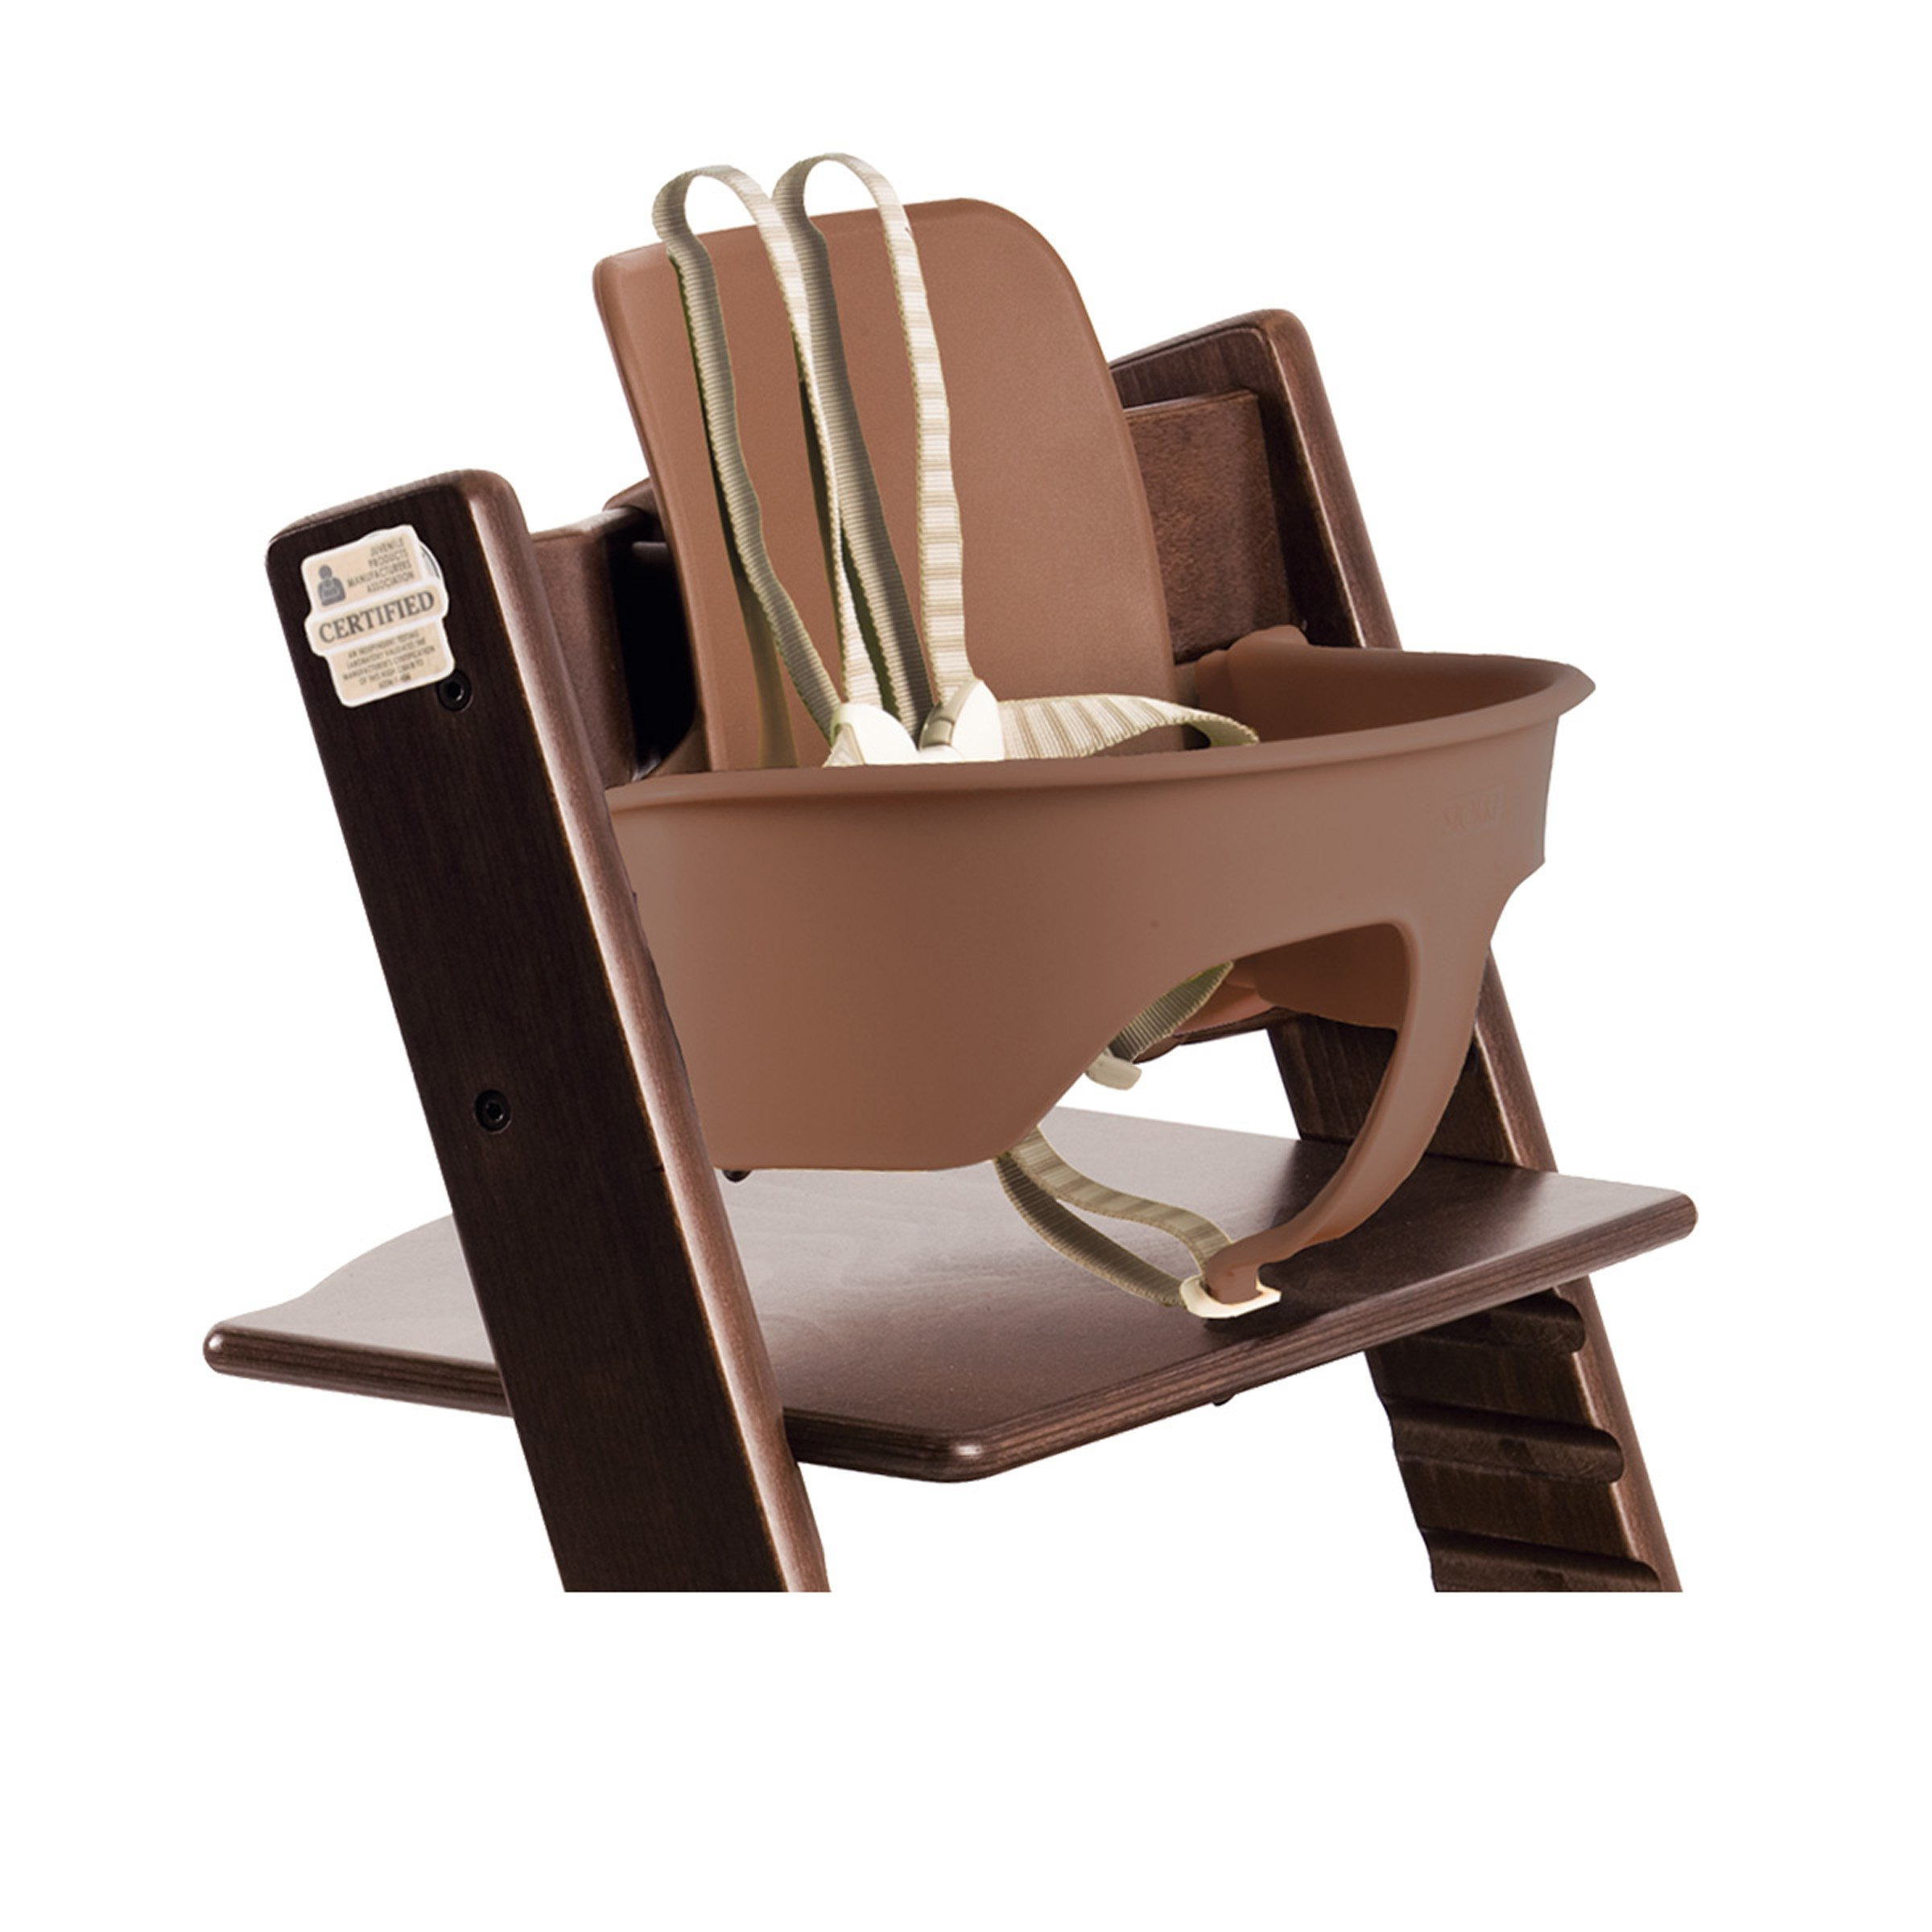 Amazon Stokke Tripp Trapp High Chair Walnut Brown Baby